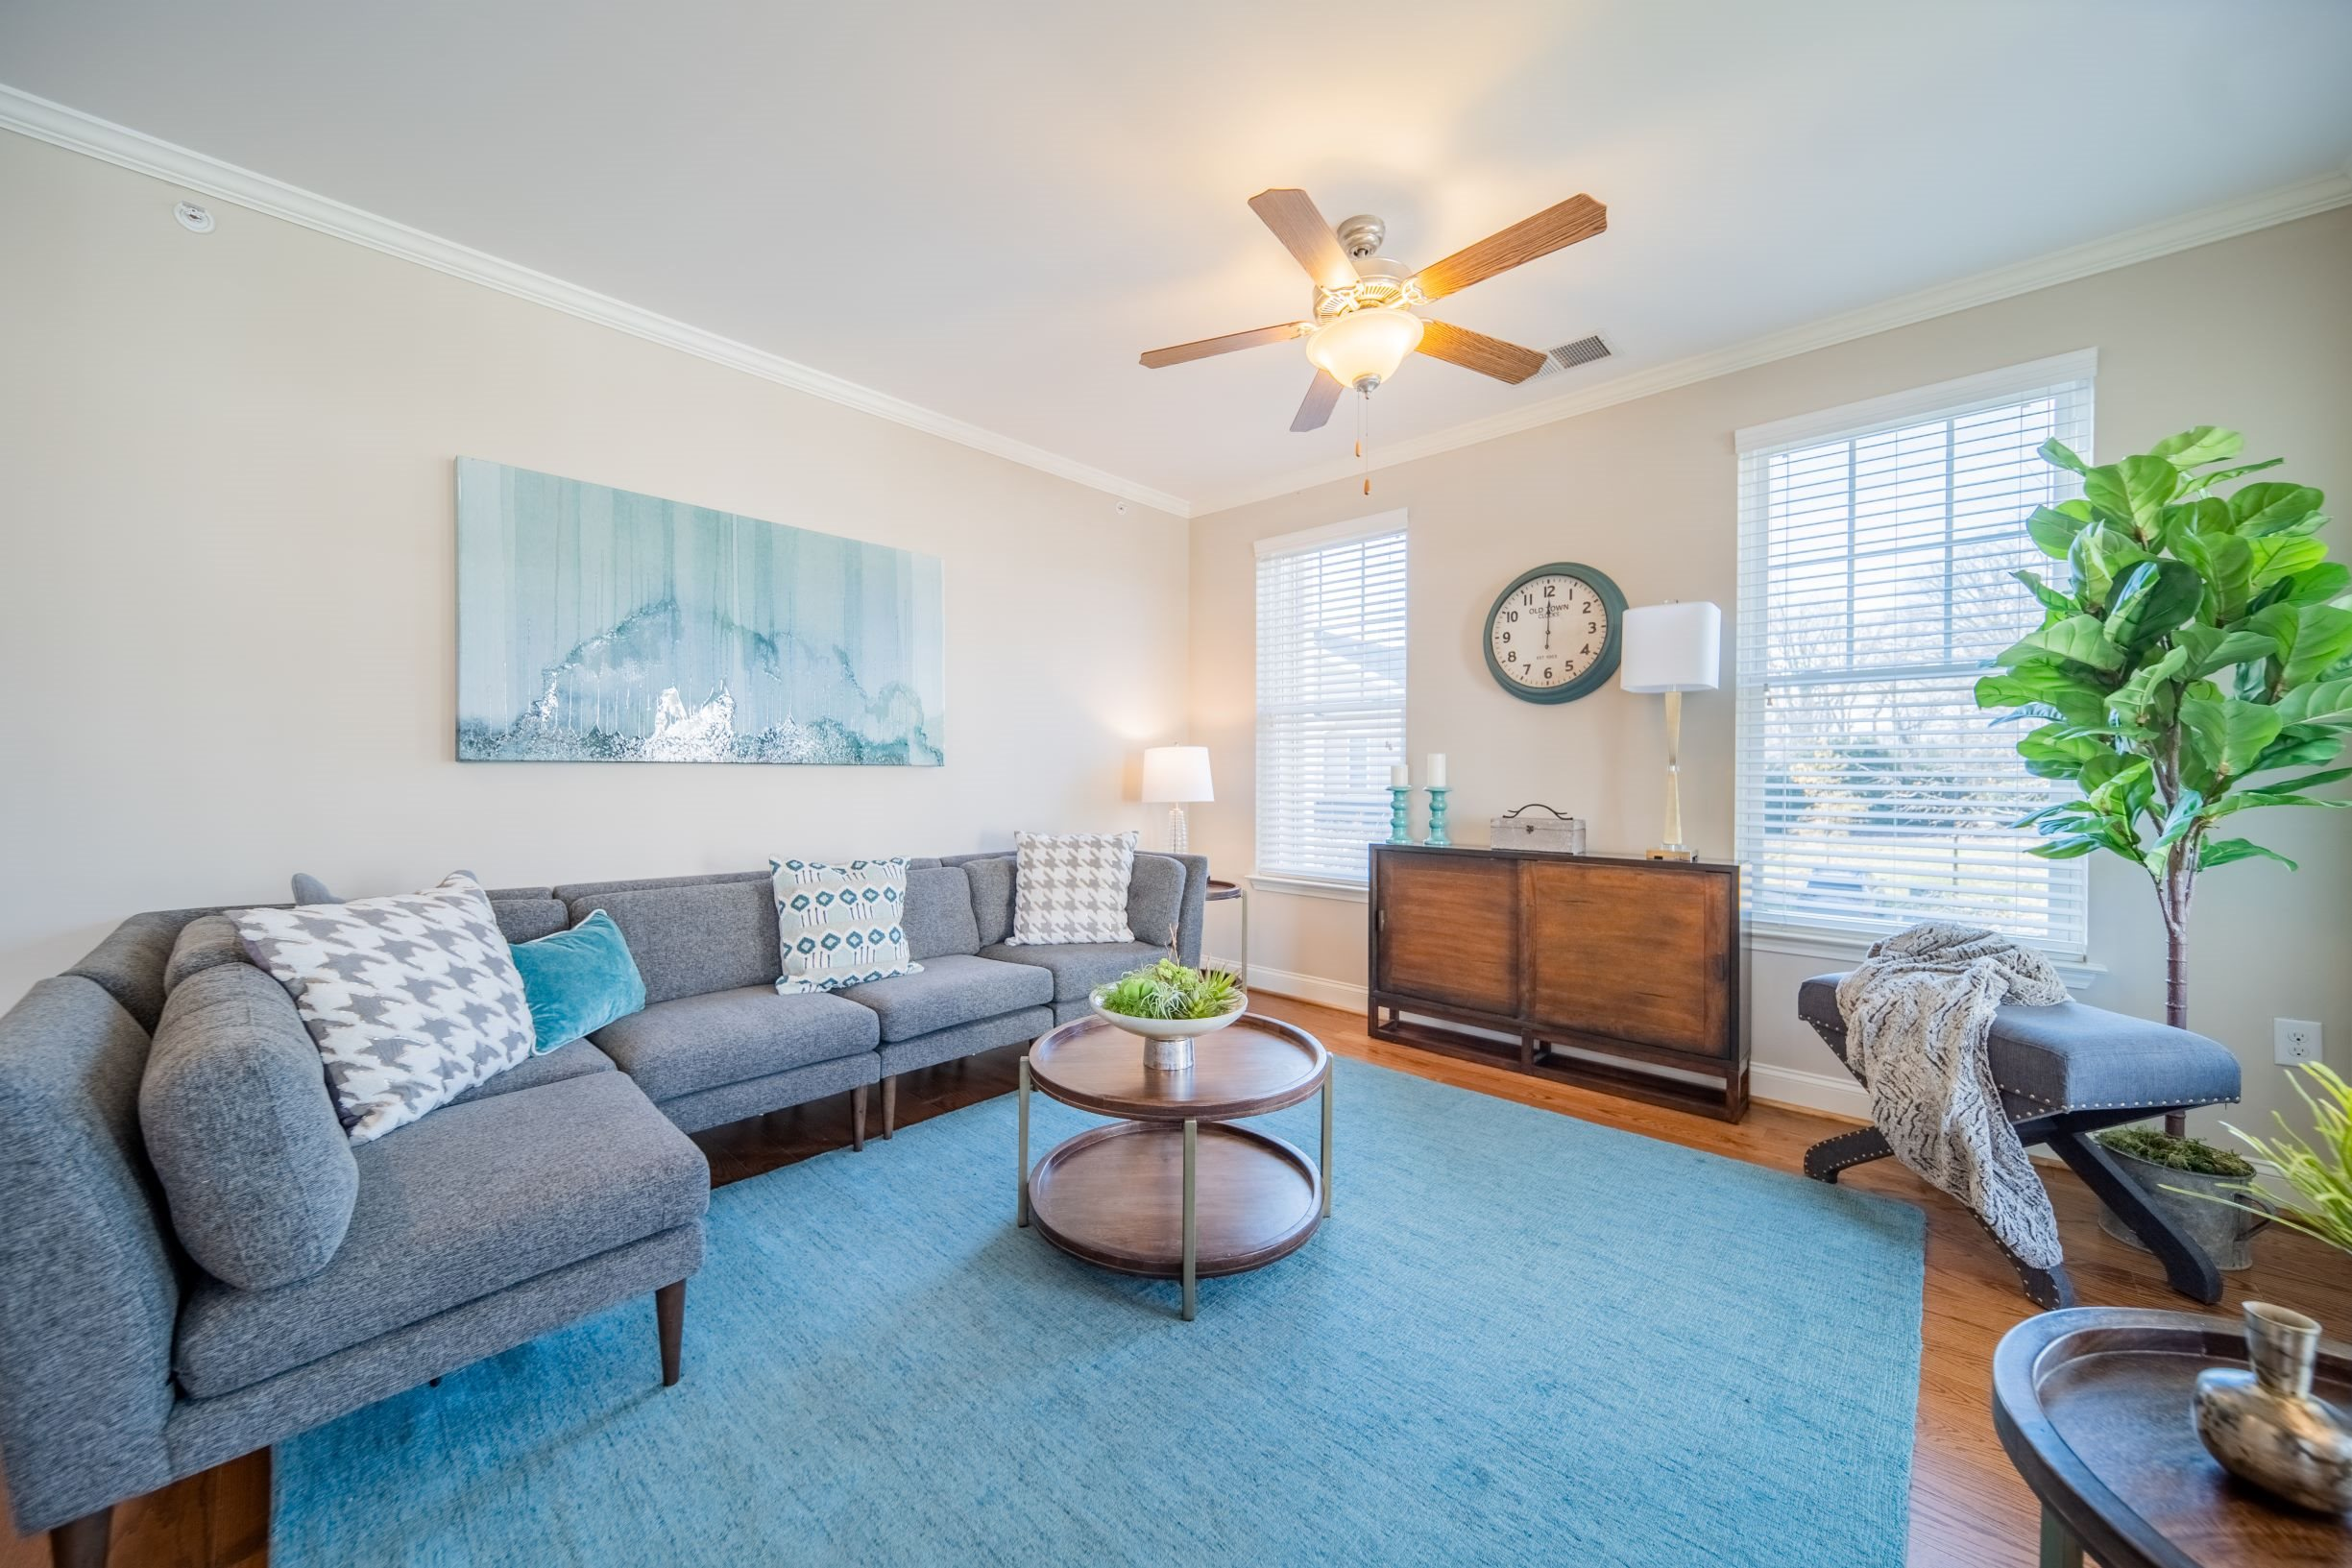 Spacious living room with lighted ceiling fan and hardwood style flooring at Piedmont Place in Greensboro, NC